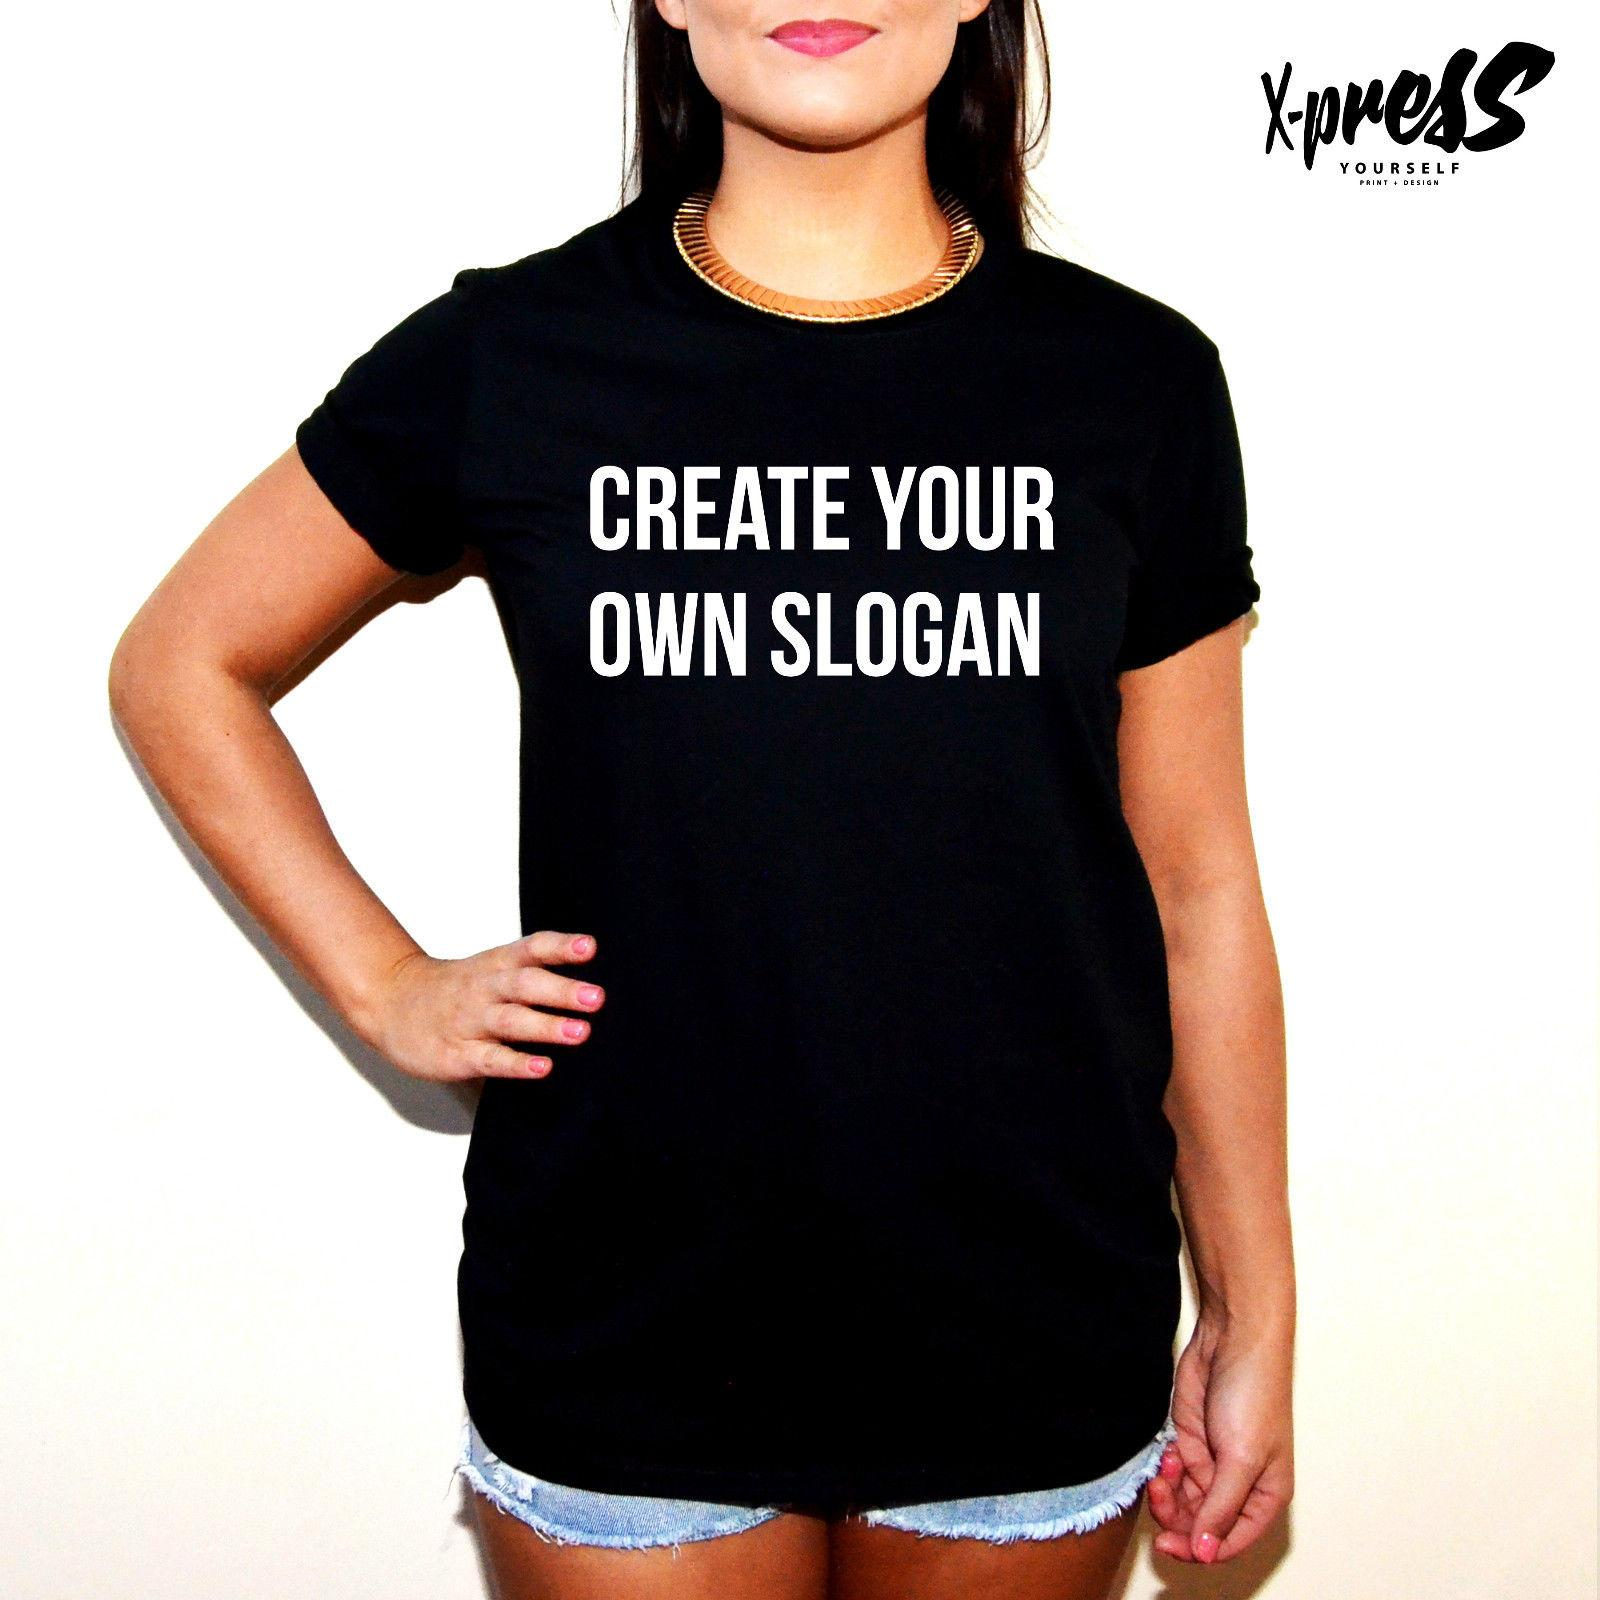 Create Your Own Slogan Tshirt Womens Girls Fashion Blog Tumblr